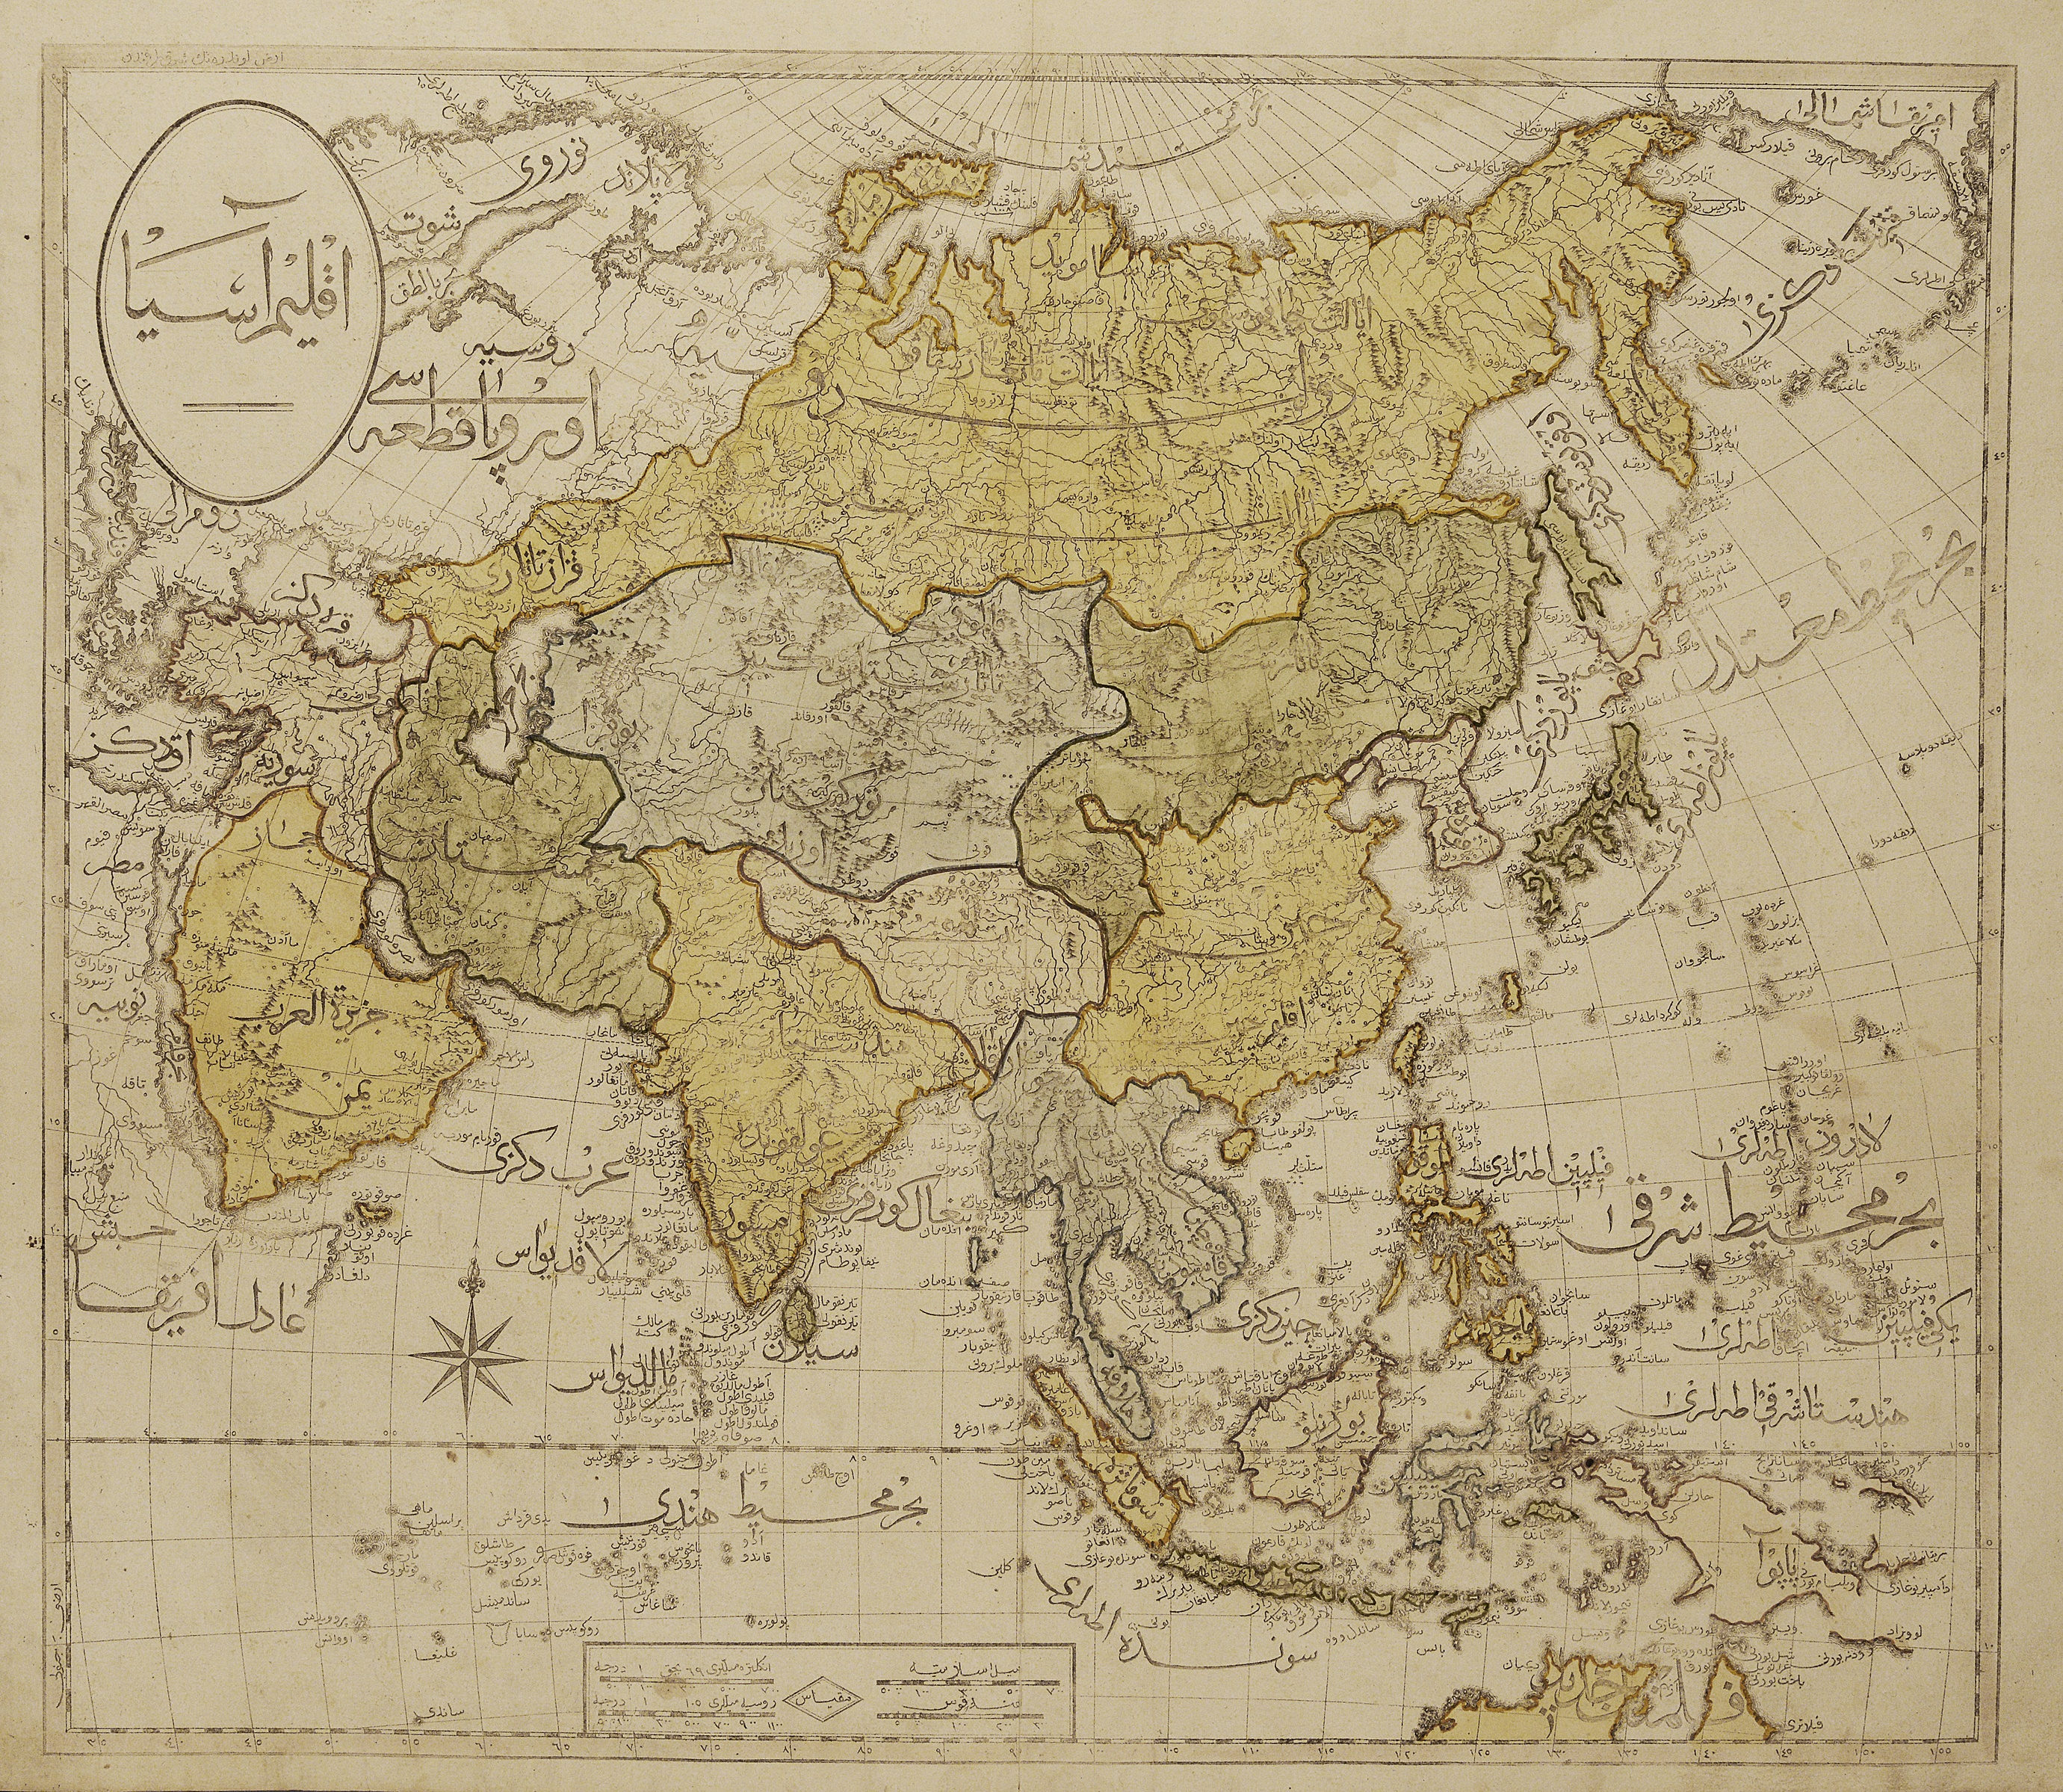 Effendi asia art history capstone titled greater asia cedid atlas 1803 translated by lale burk and weam zaky publicscrutiny Gallery